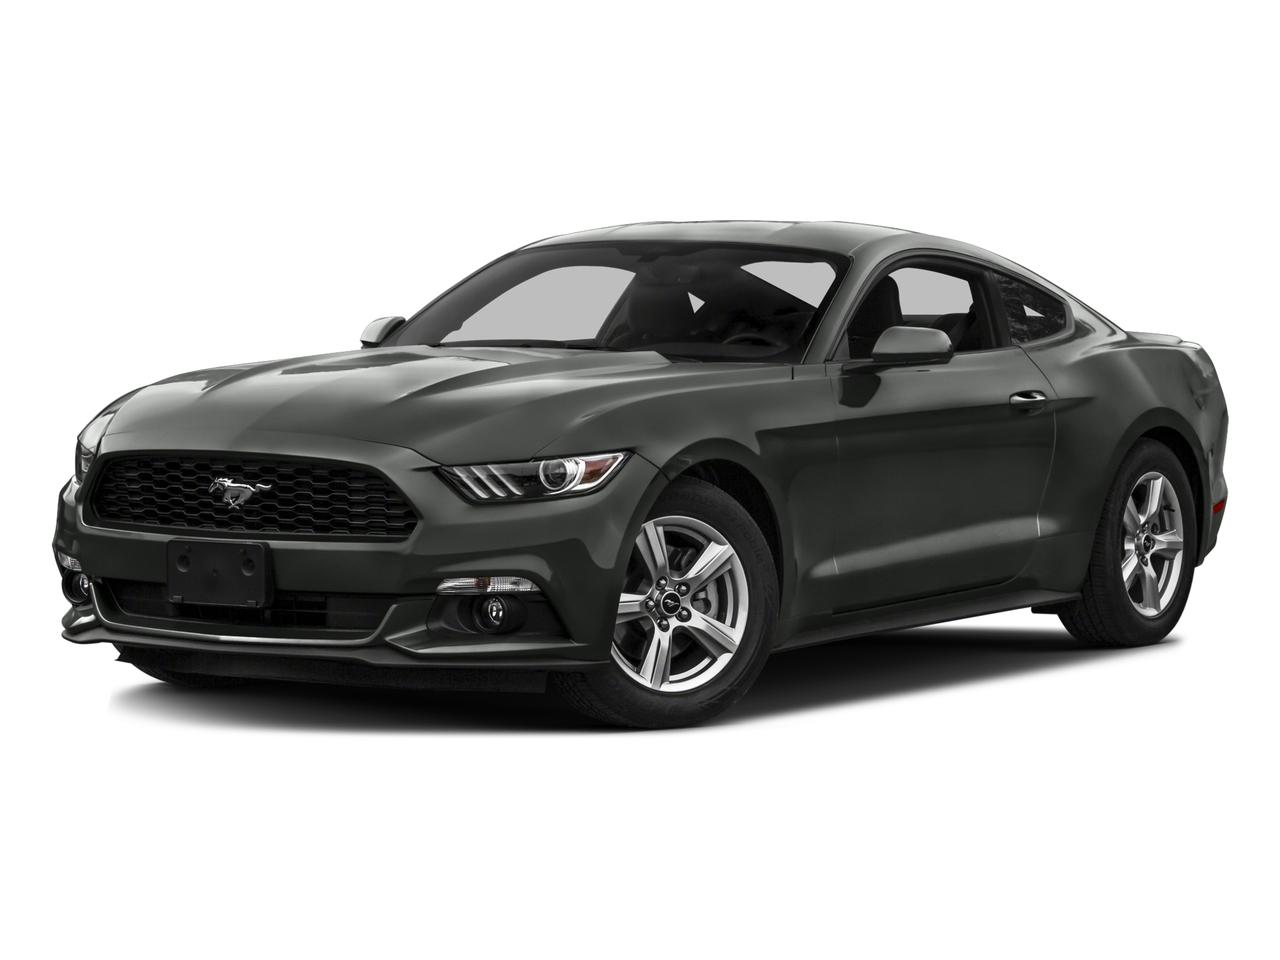 2016 Ford Mustang Vehicle Photo in Bowie, MD 20716